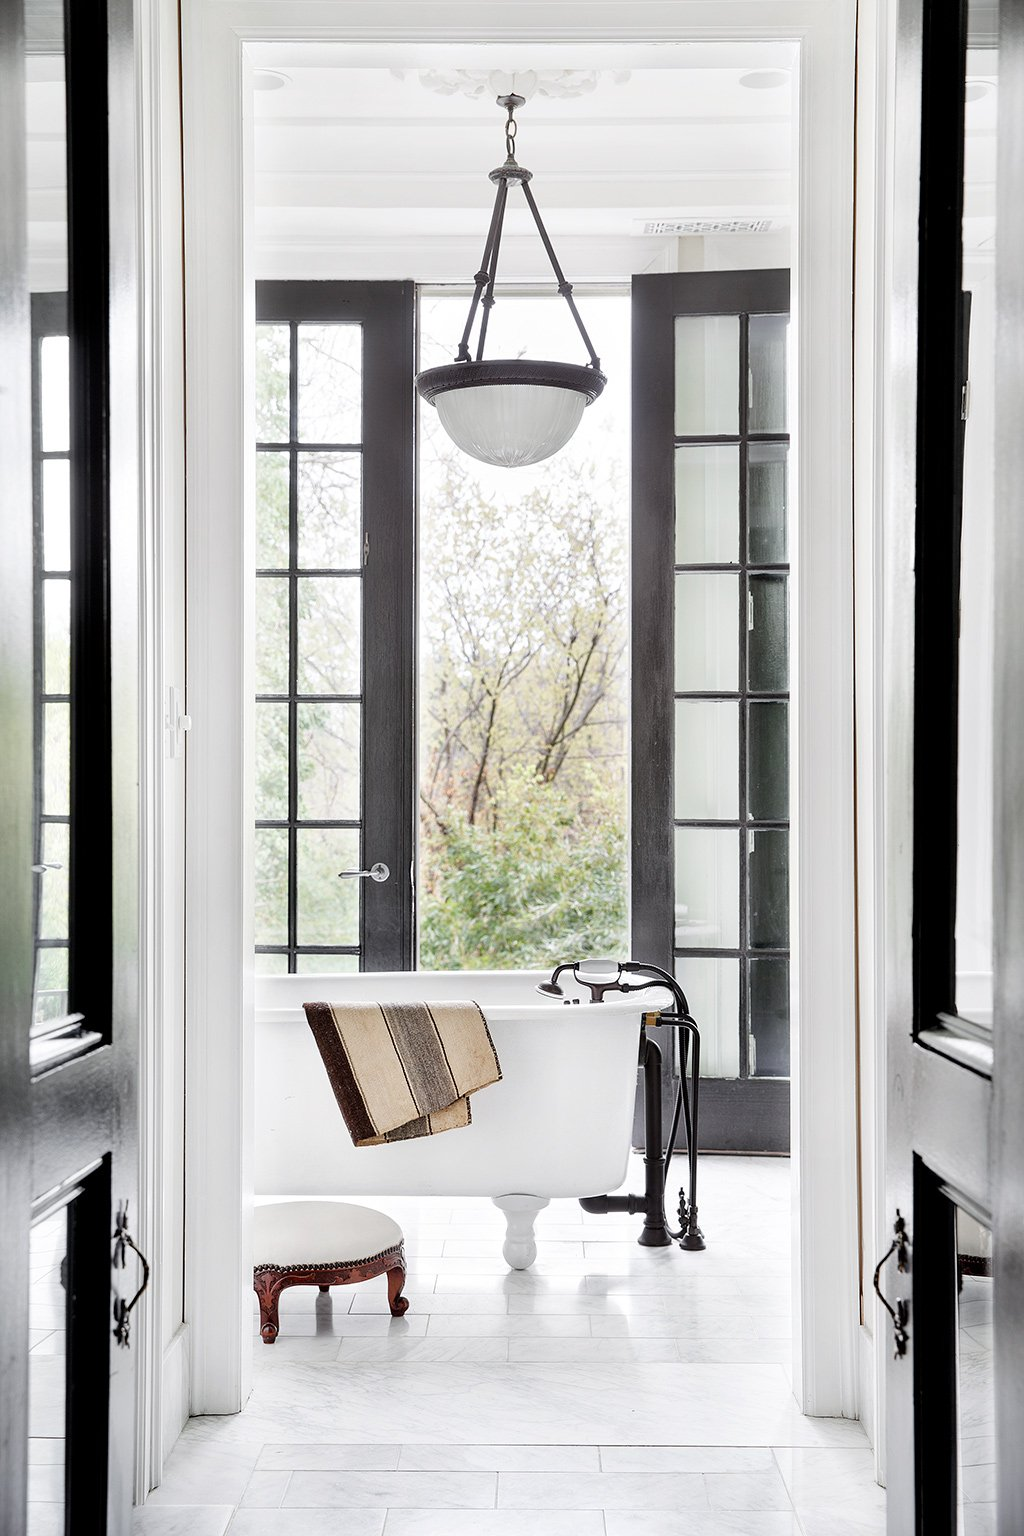 Jaw-dropping Inspiration for Your Master Bathroom